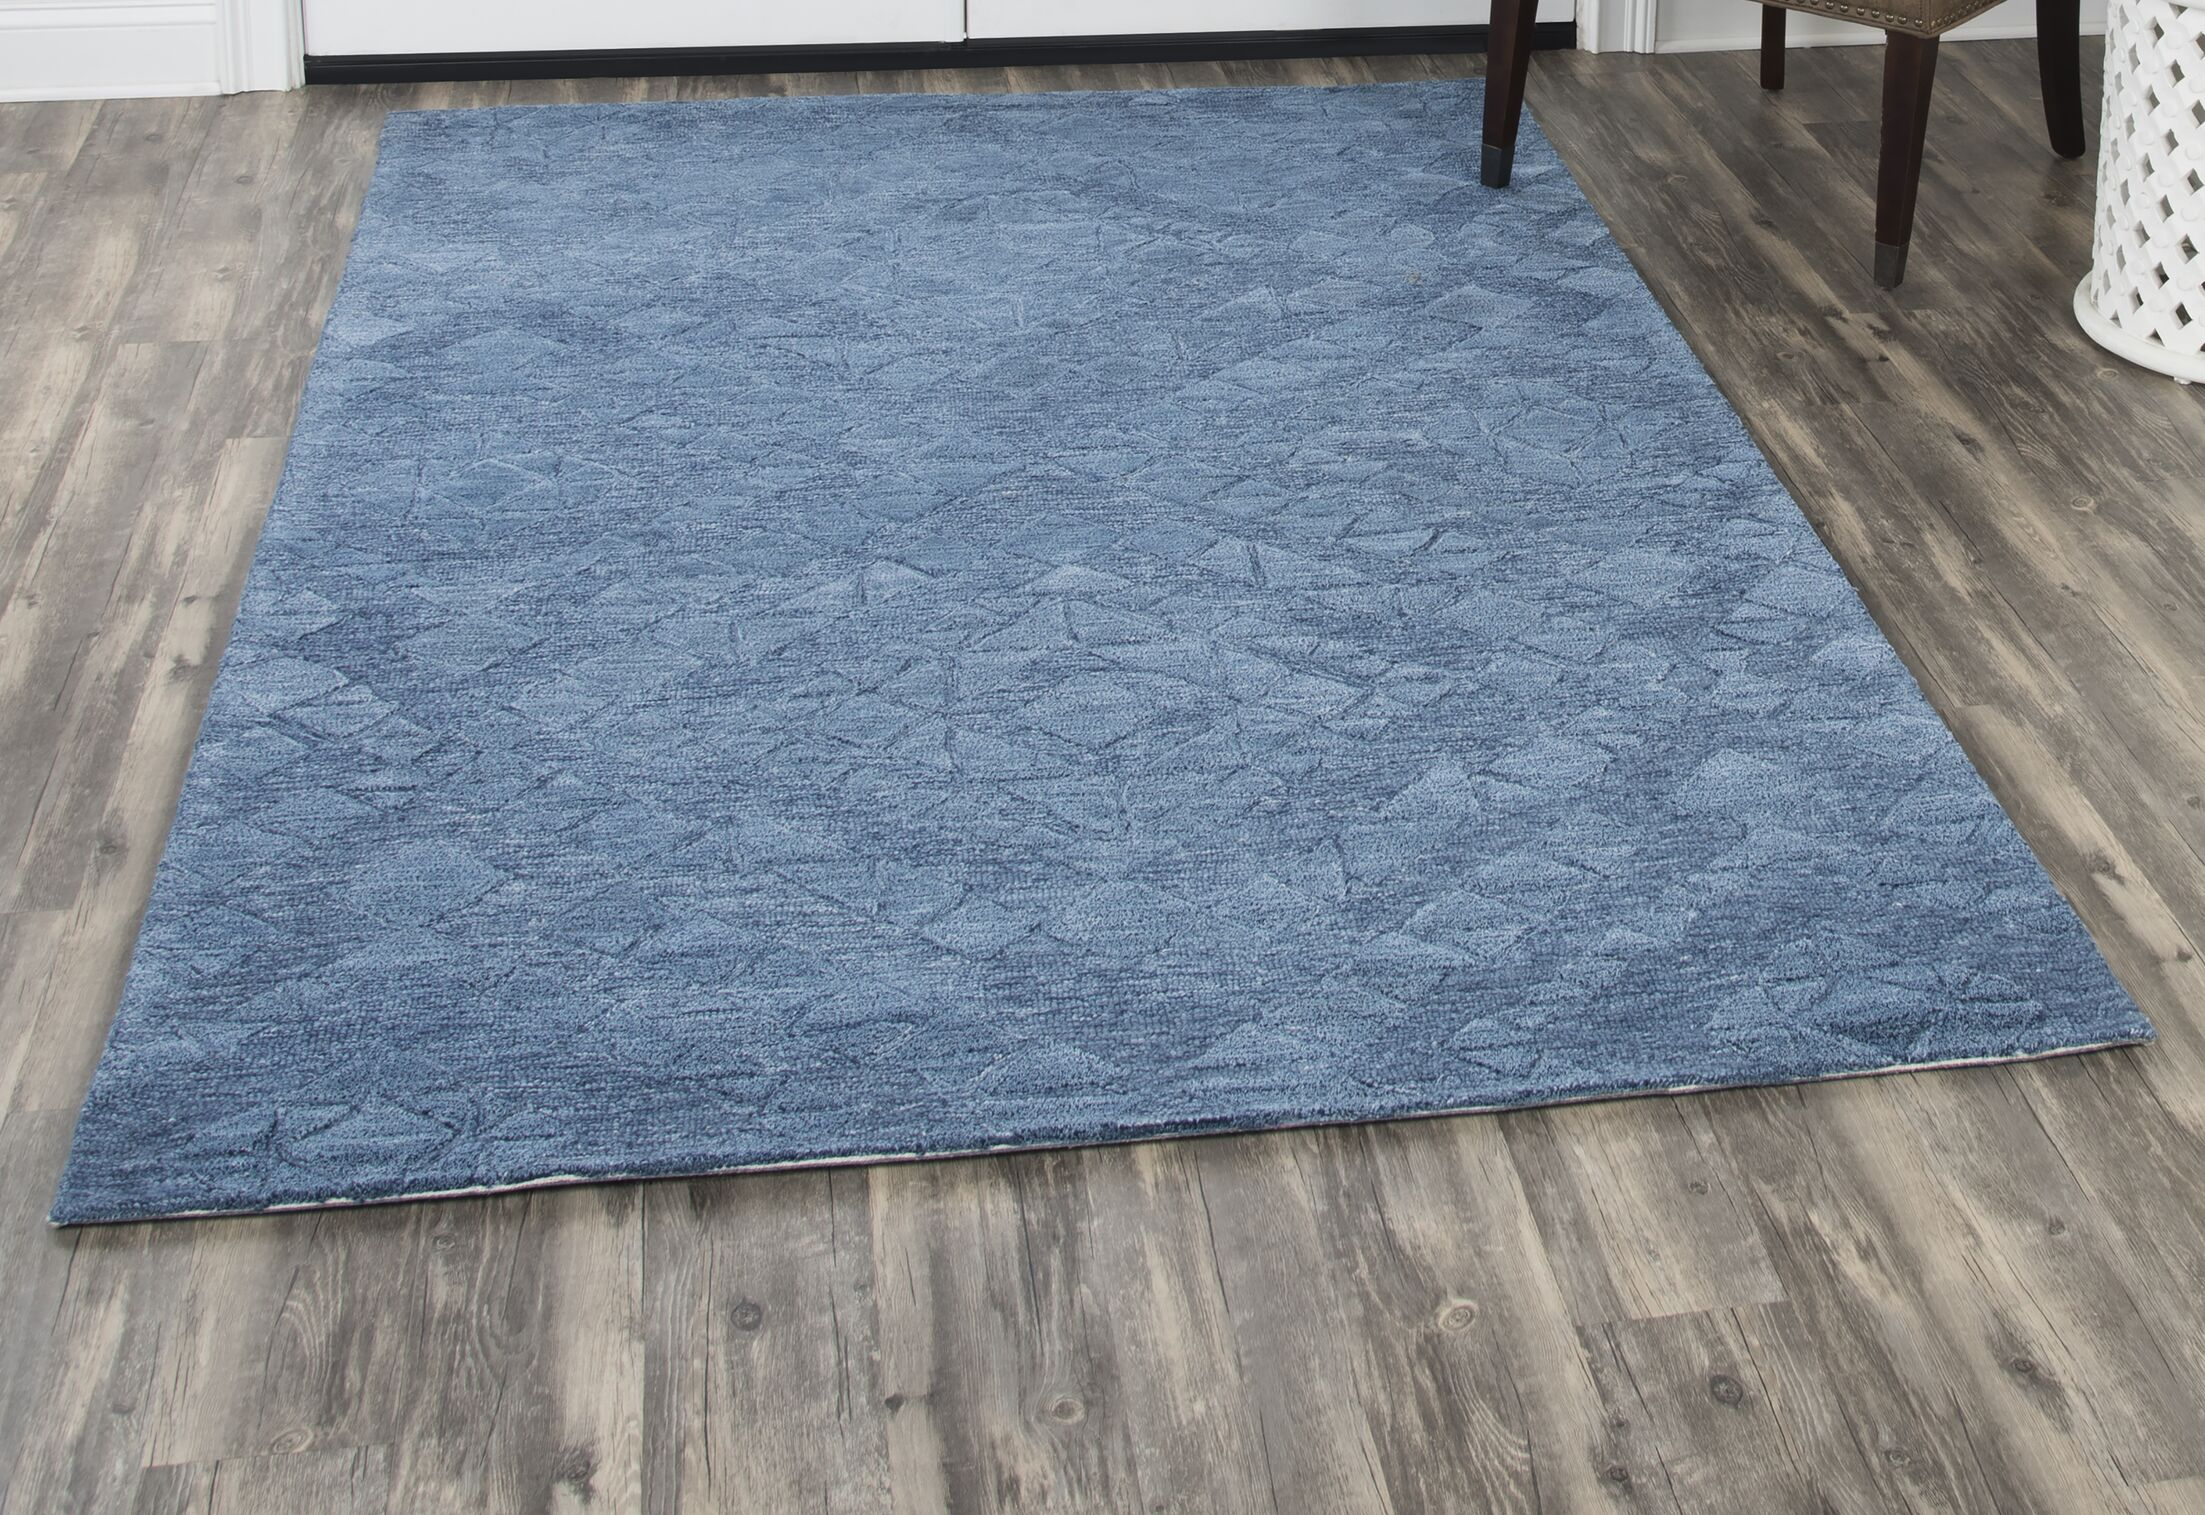 Phan Hand-Tufted Wool Blue Area Rug Rug Size: Rectangle 5' x 8'